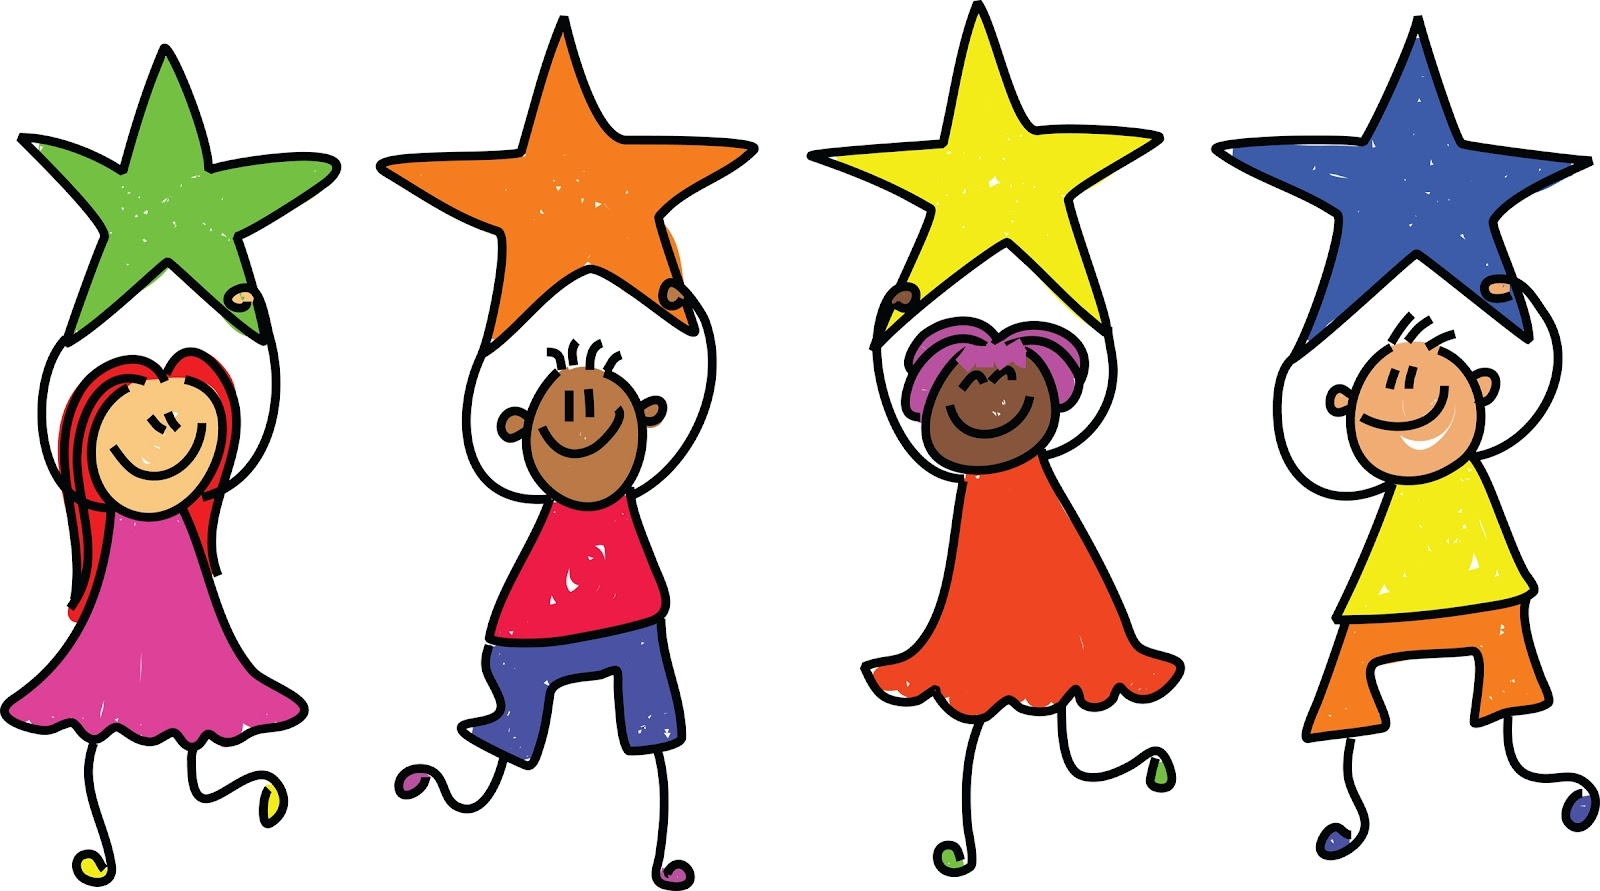 Free Cute Student Cliparts, Download Free Clip Art, Free Clip Art on.